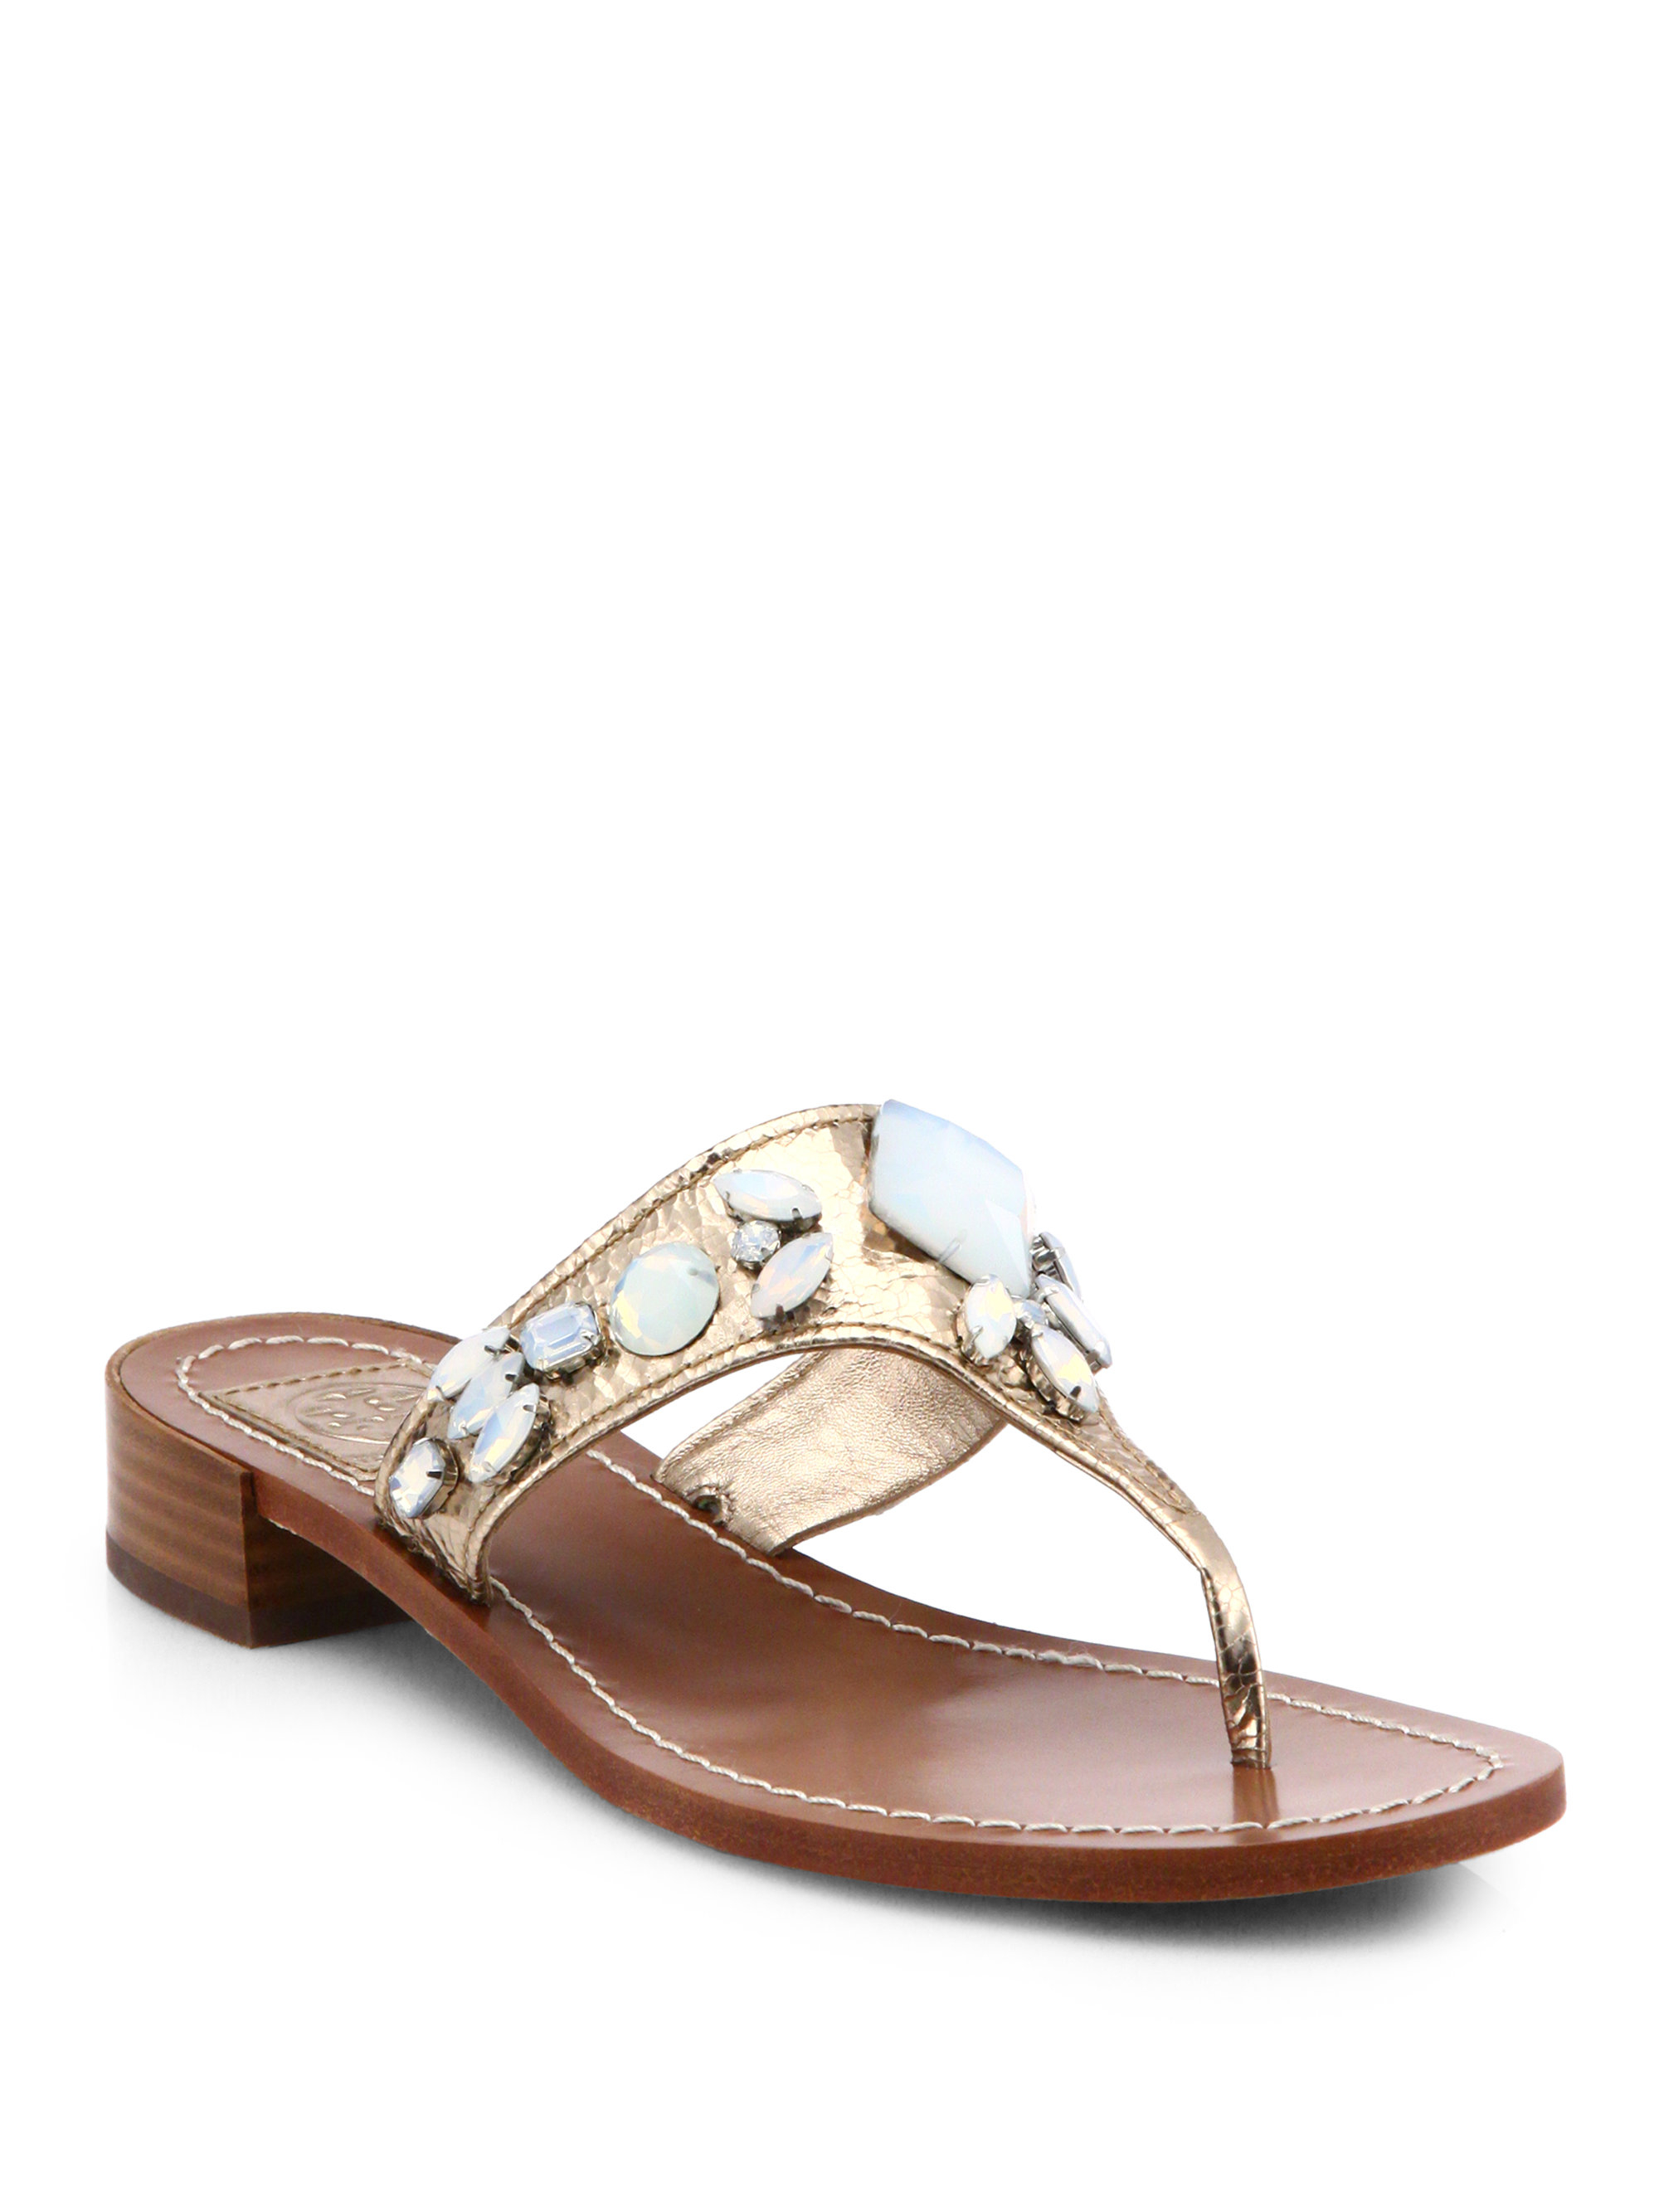 Tory Burch Ginevra Jeweled Metallic Leather Sandals In